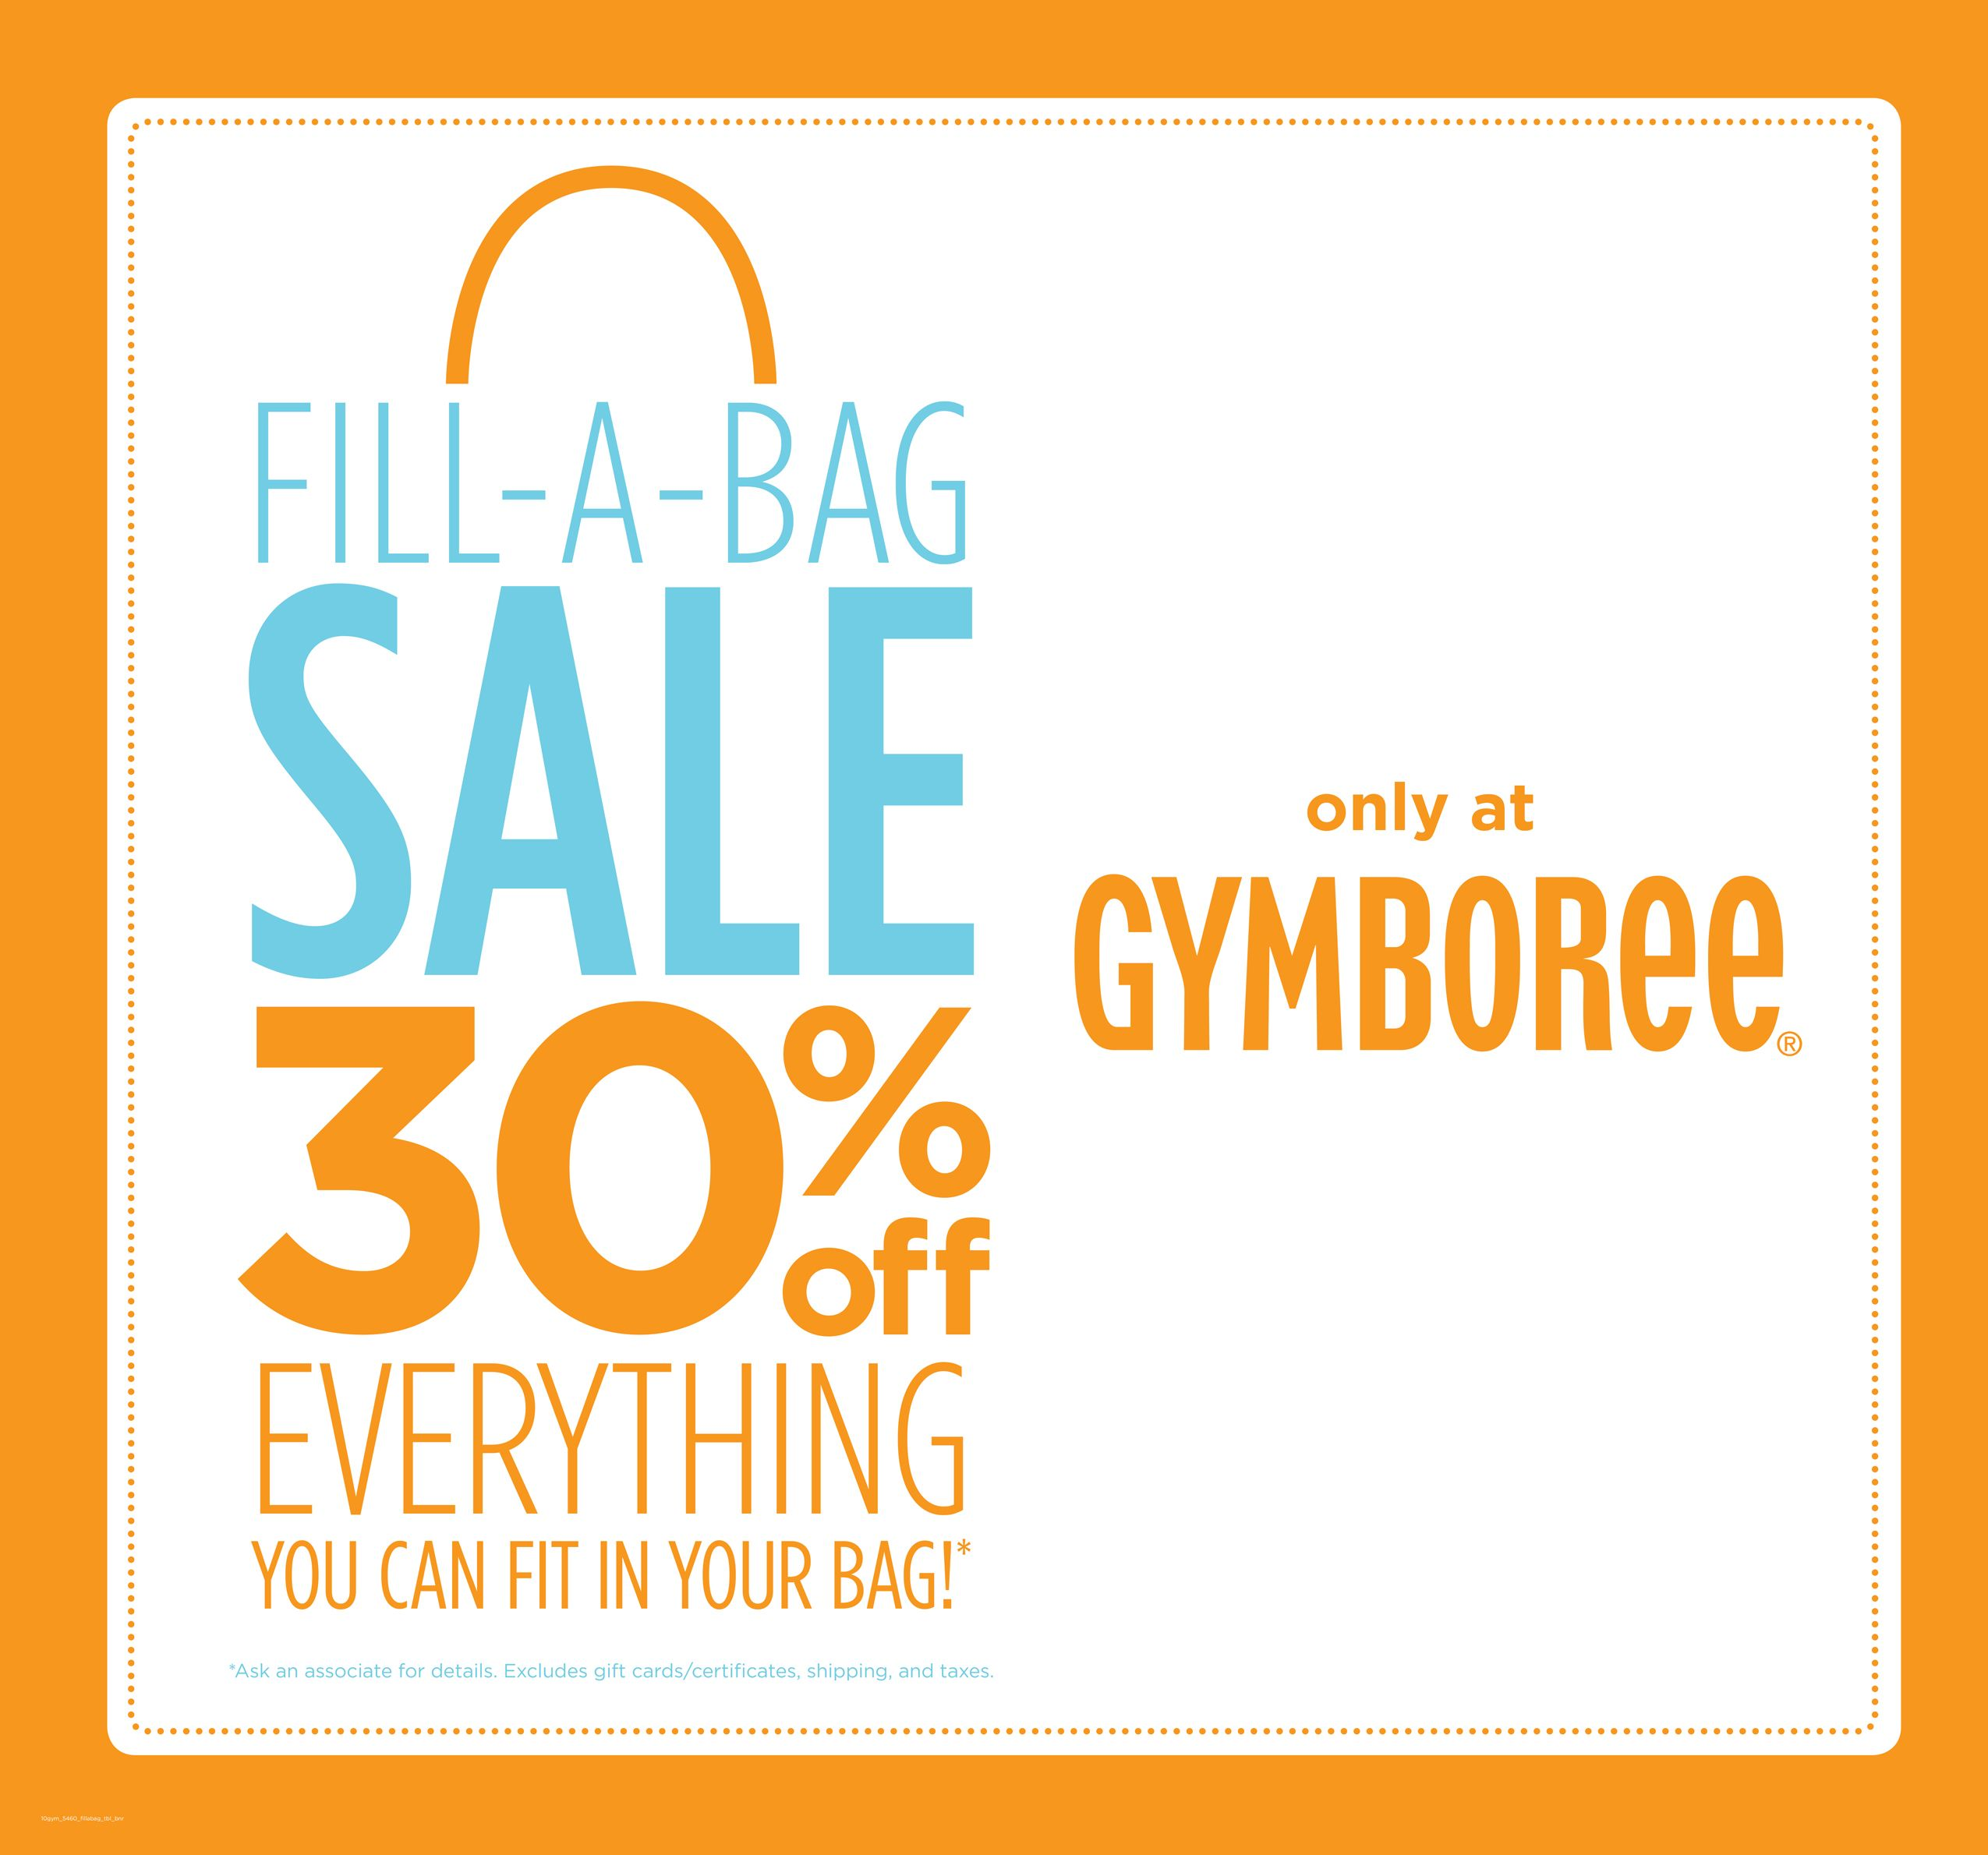 photo about Gymboree Printable Coupon known as Gymboree Printable Coupon 2016 The Gymboree Organization is a